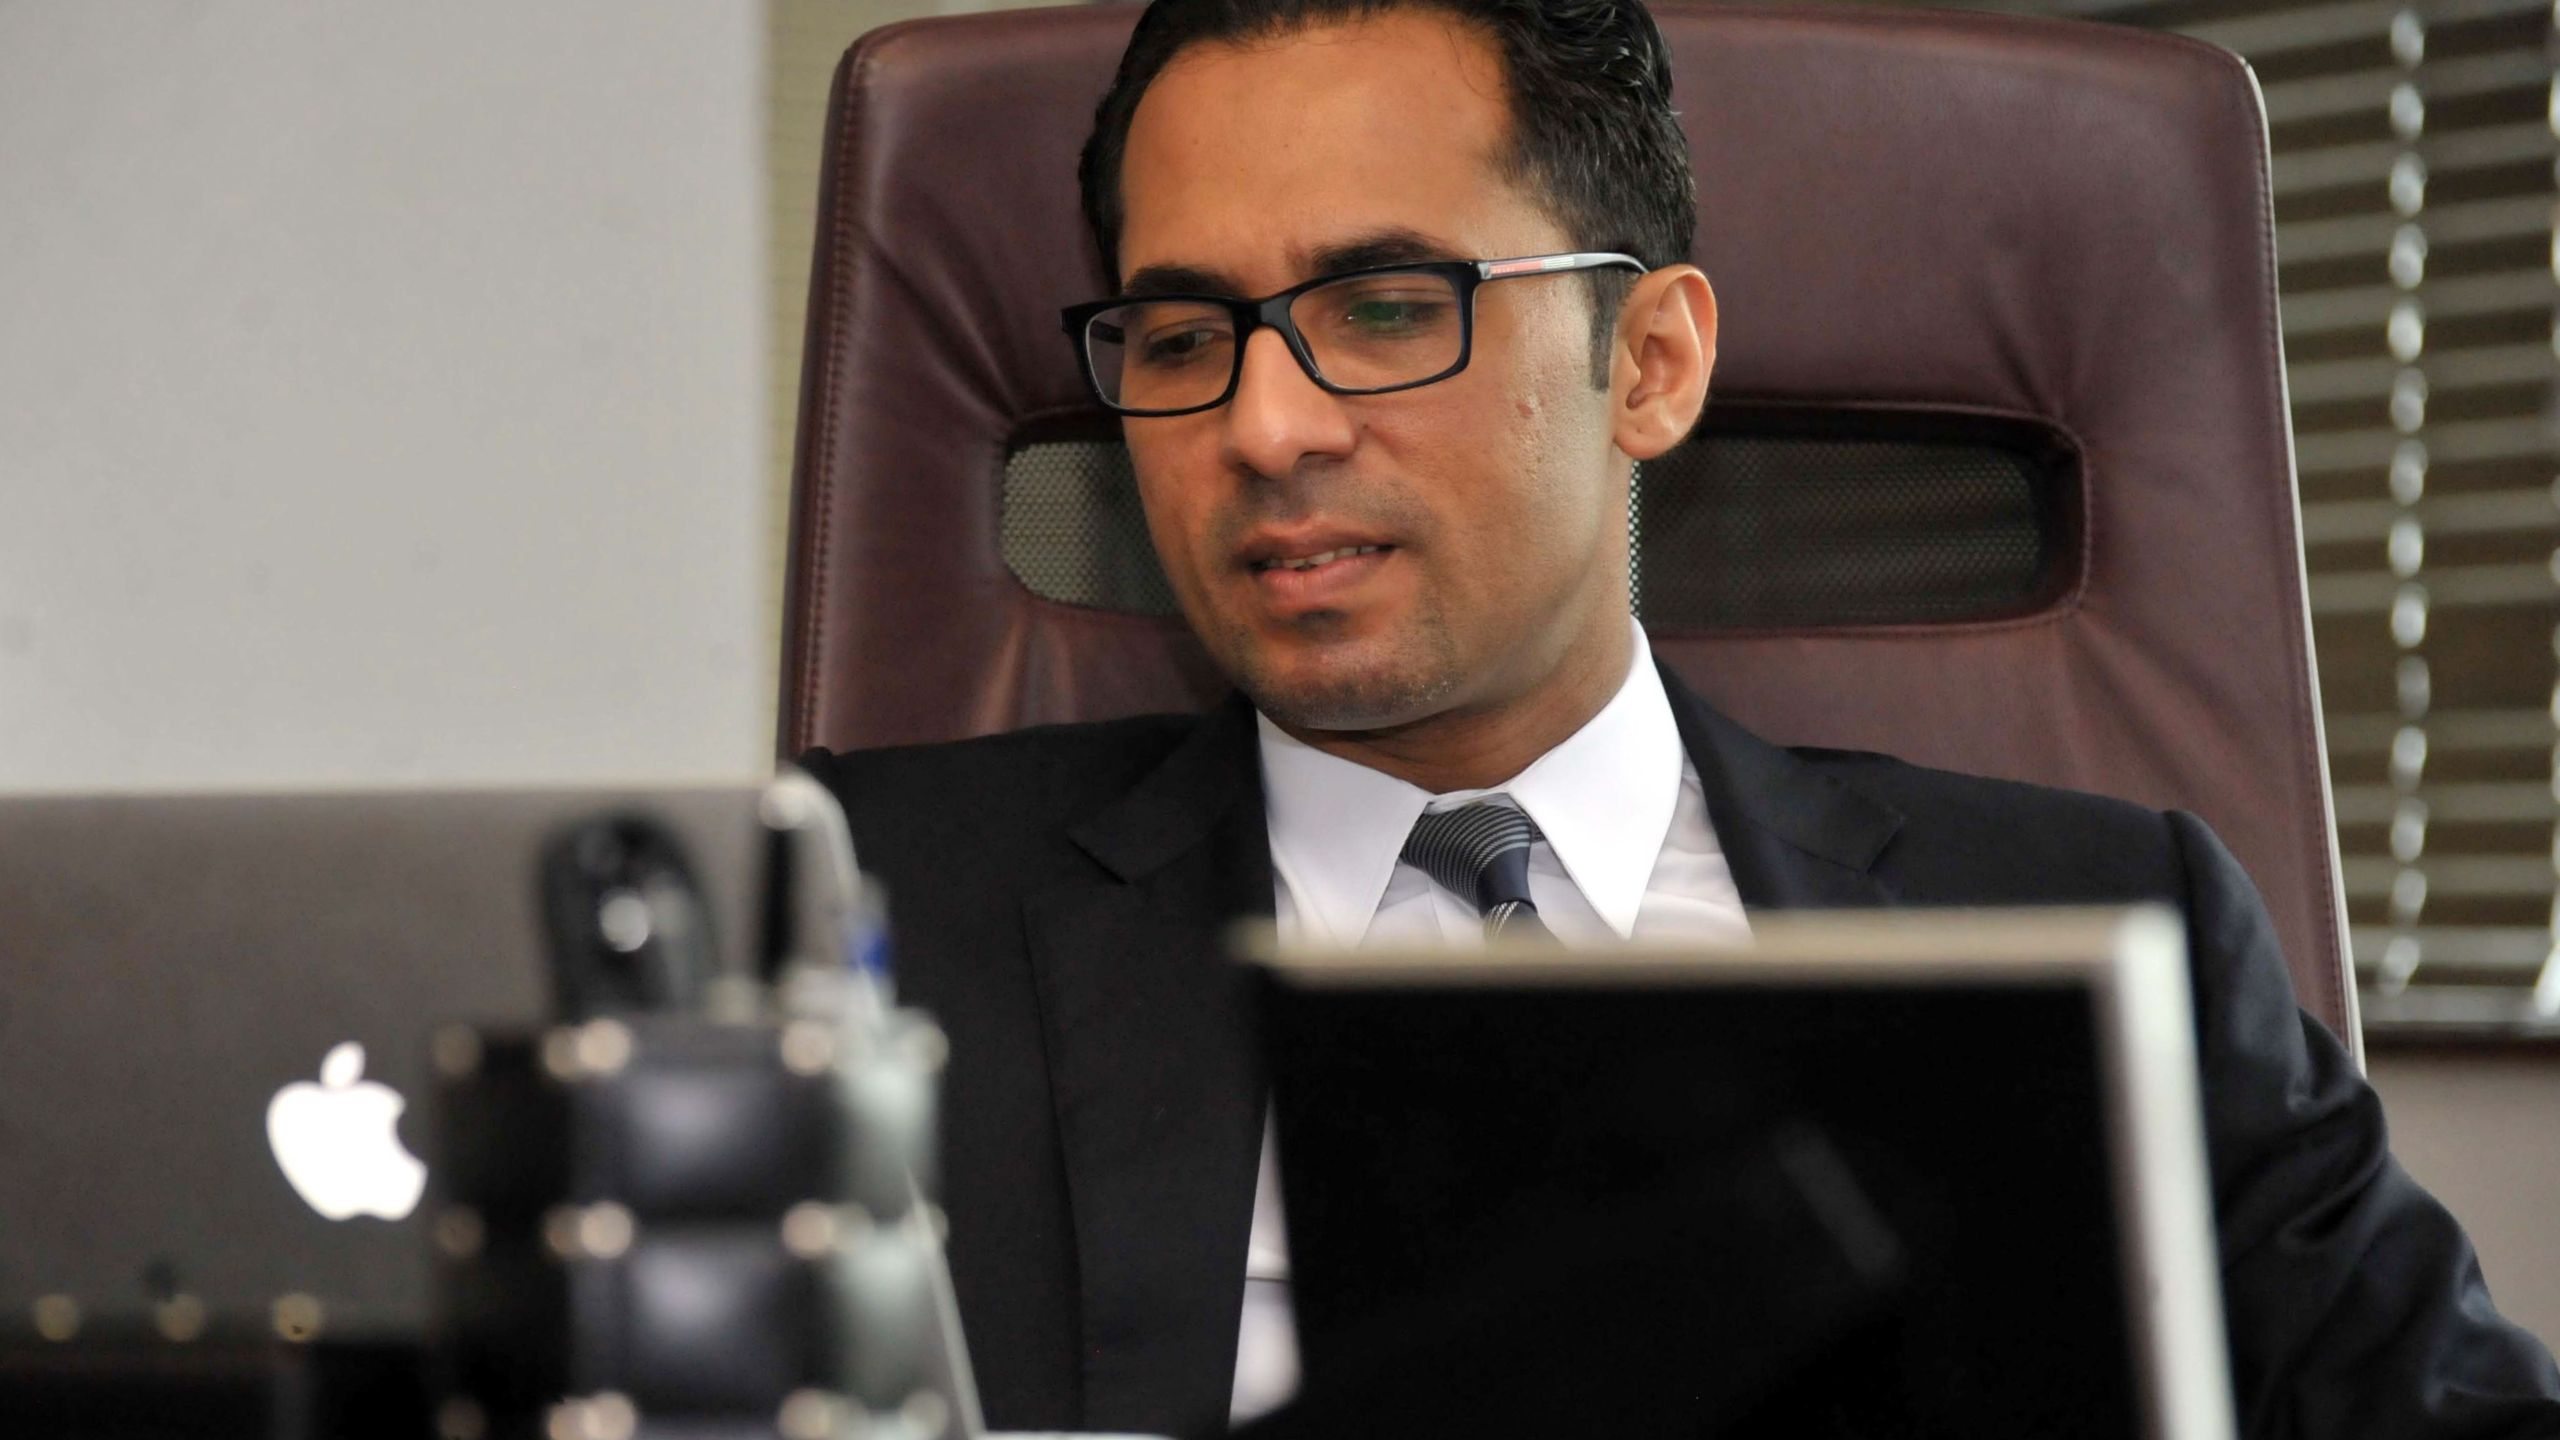 A file picture taken on April 23, 2015, shows Tanzanian businessman Mohammed Dewji at his office in Dar es Salaam. (Credit: KHALFAN SAID HASSAN/AFP/Getty Images)